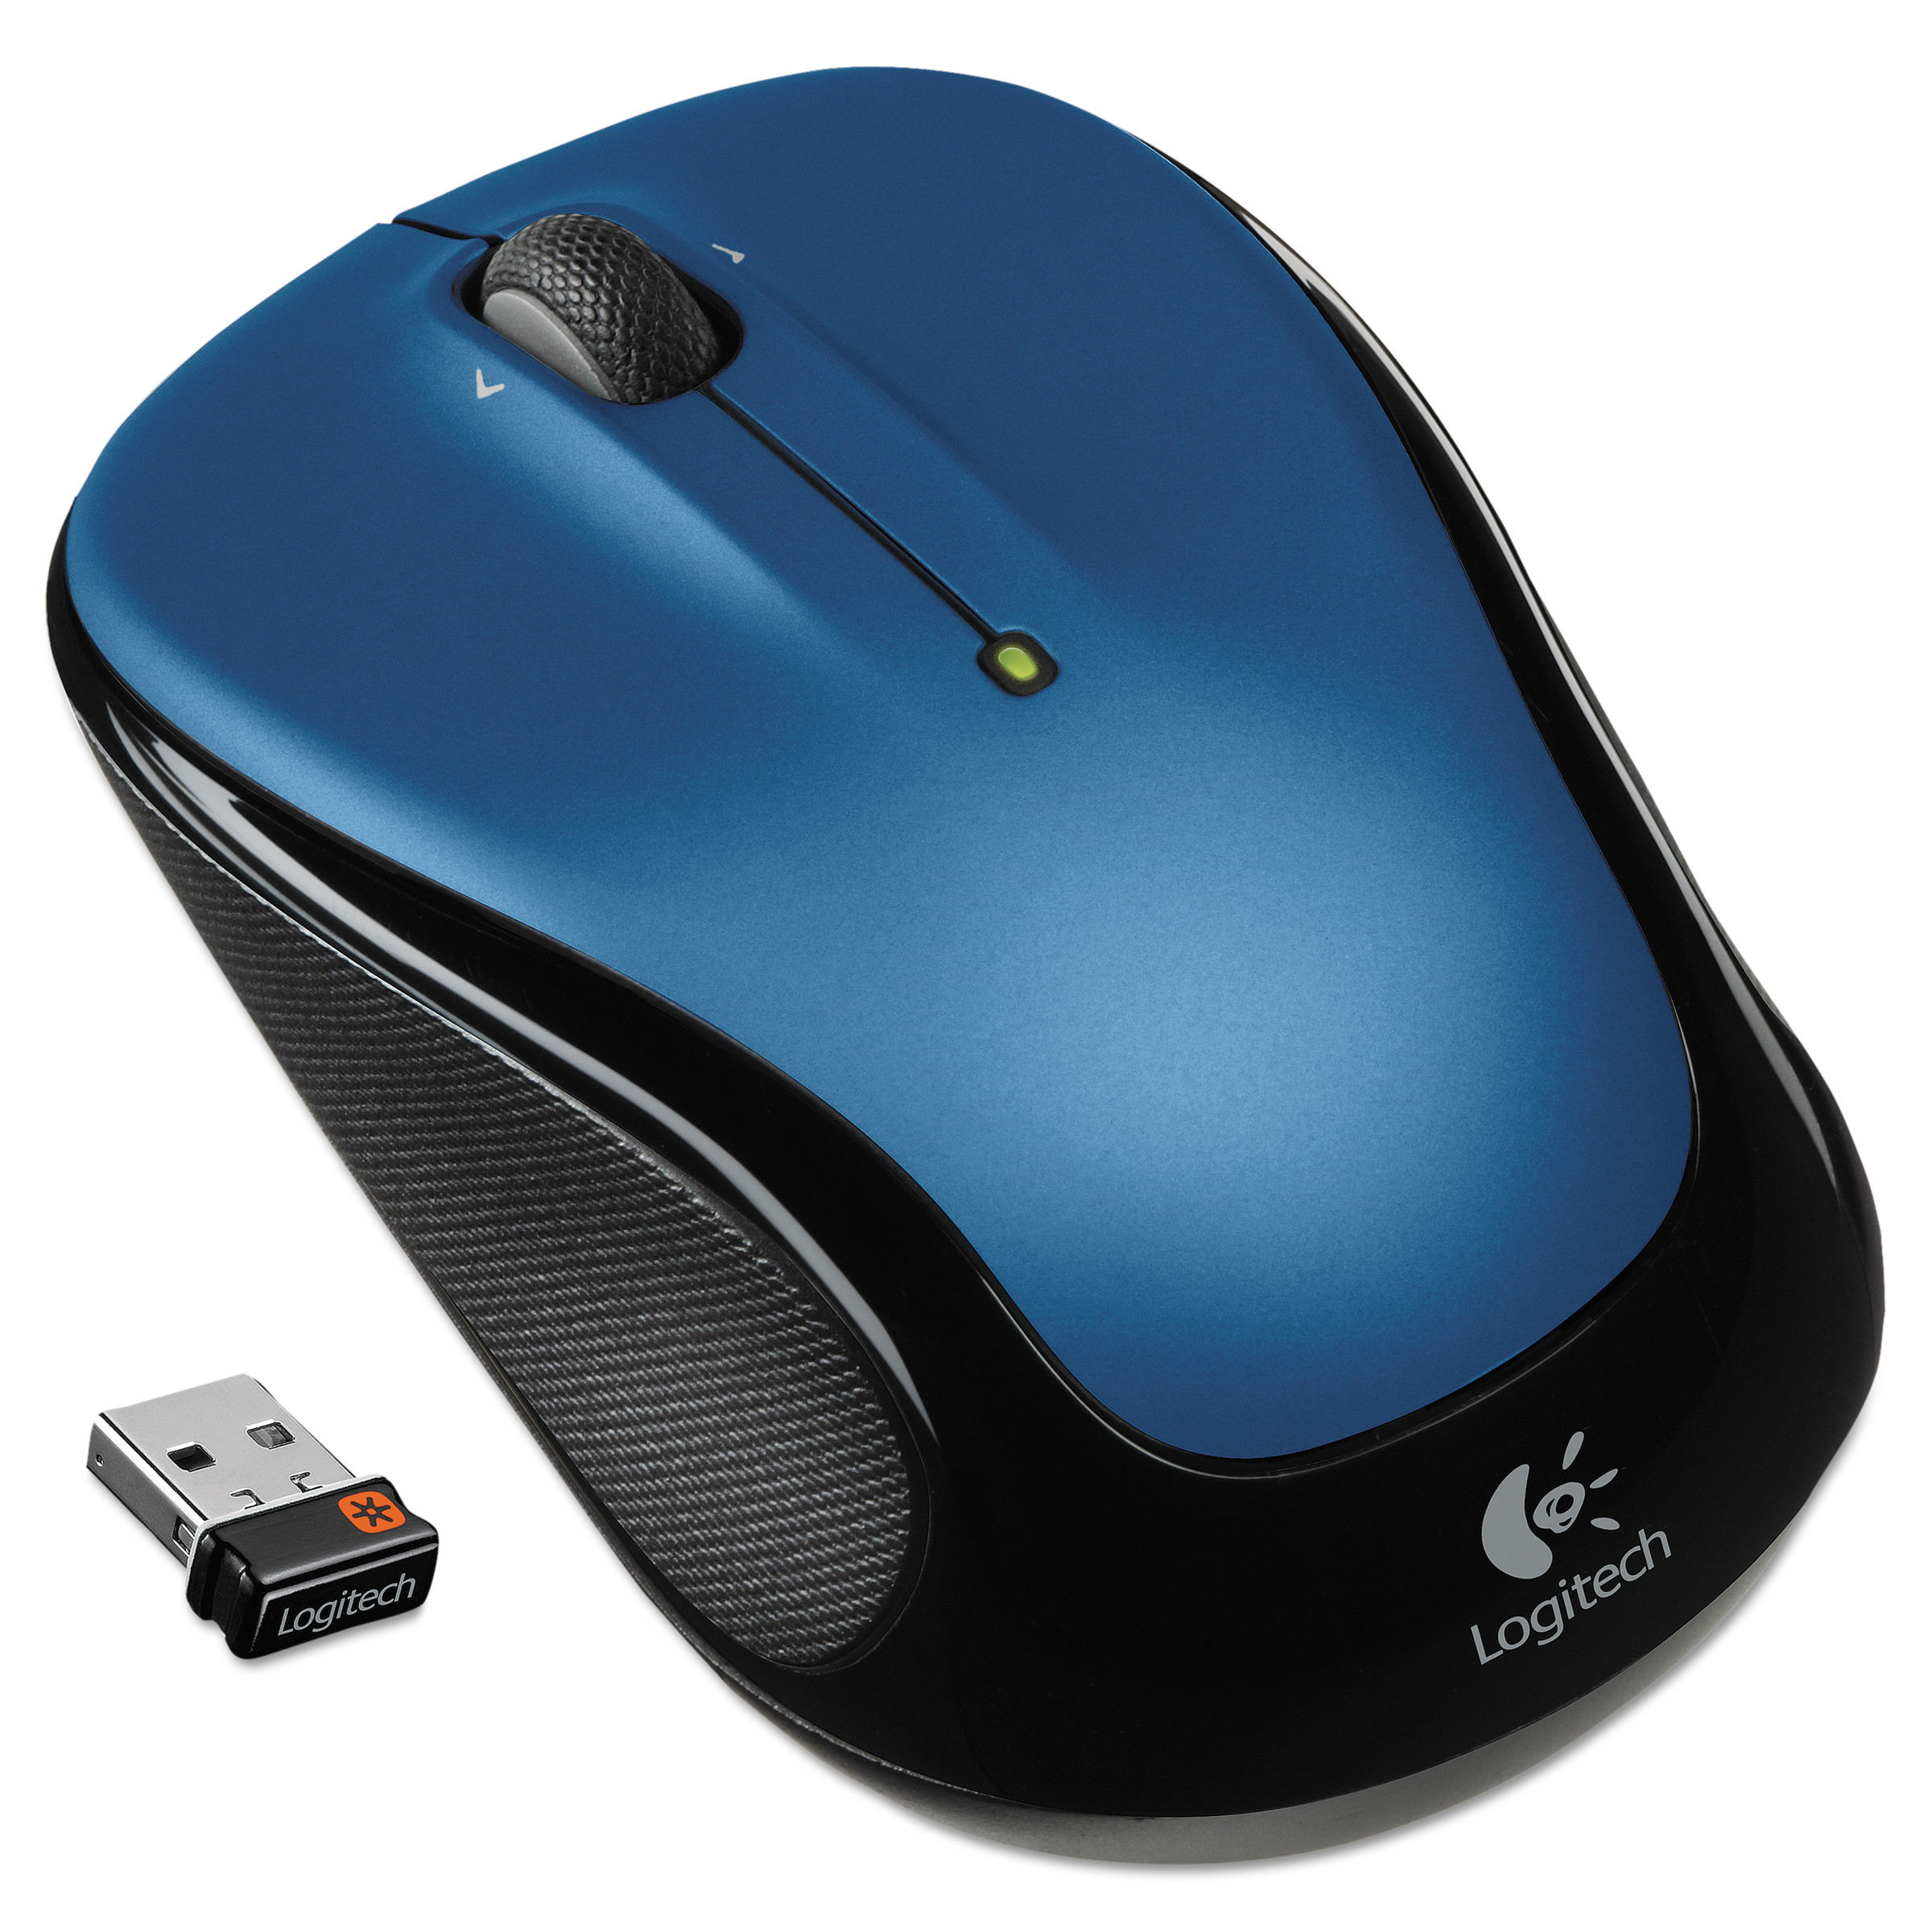 Drawn rodent pc mouse Mouse Mice Logitech Walmart Wireless